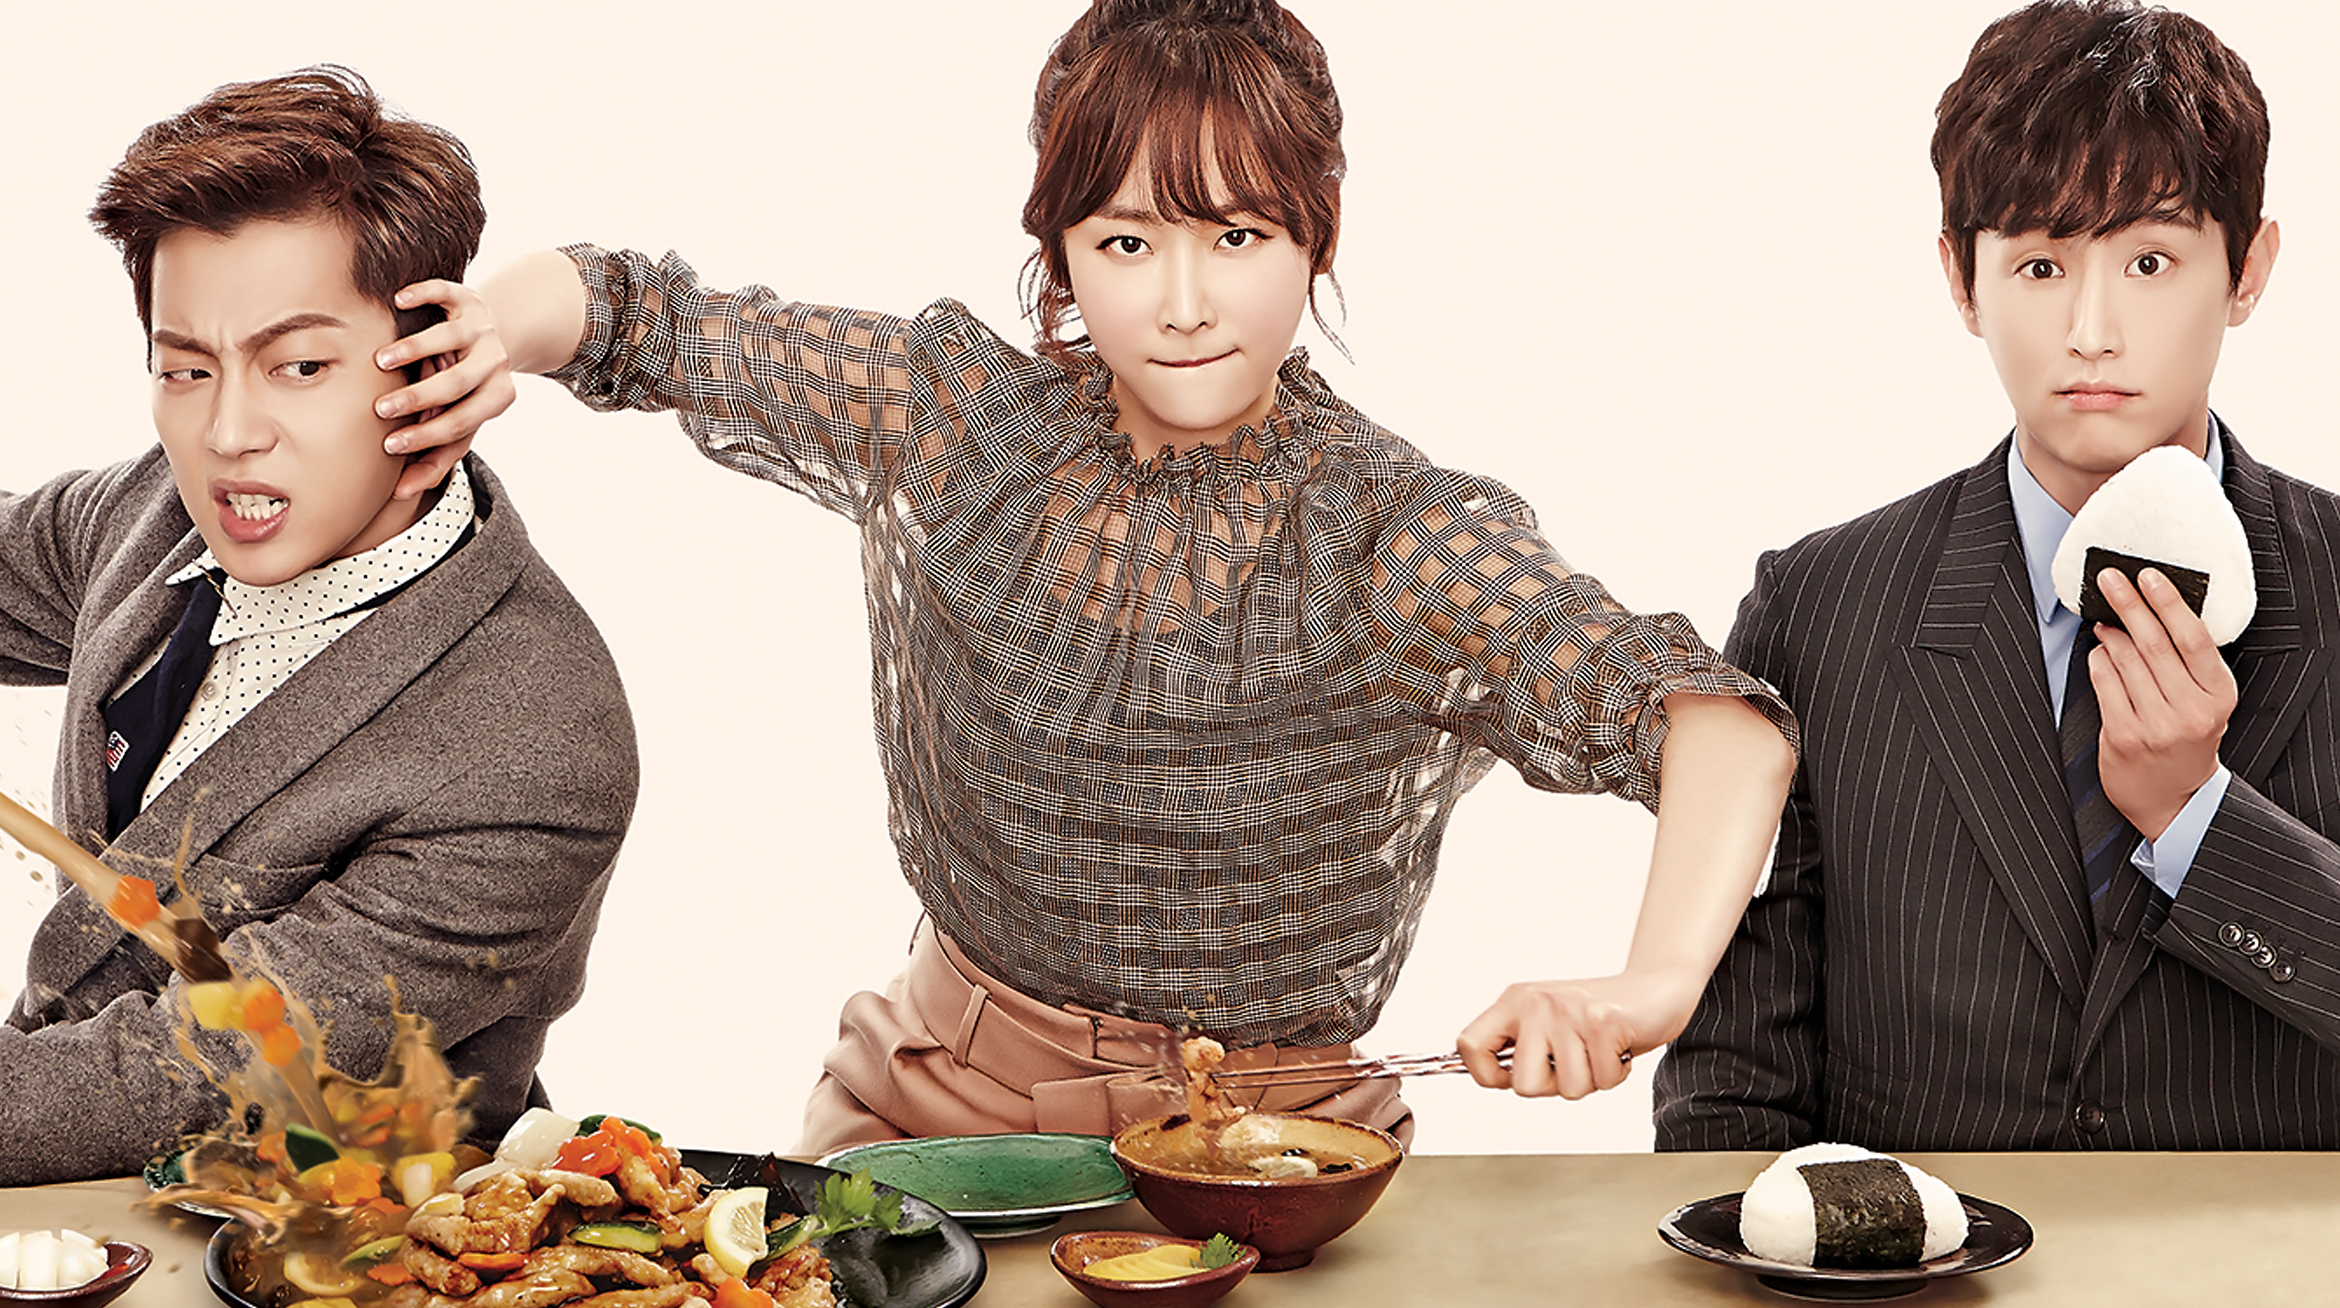 Let's Eat Season 2